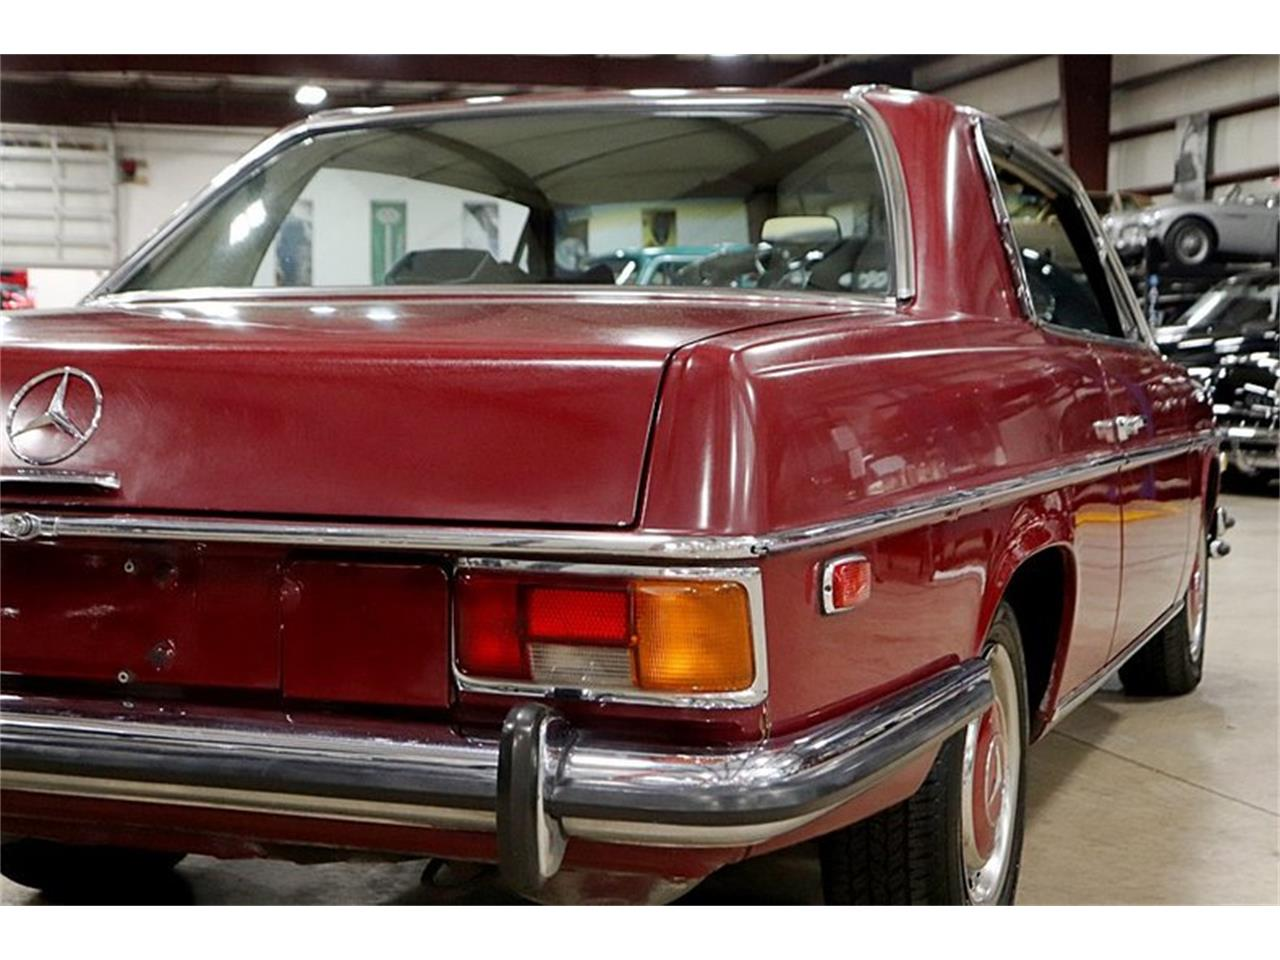 1971 Mercedes-Benz 250C for sale in Kentwood, MI – photo 49